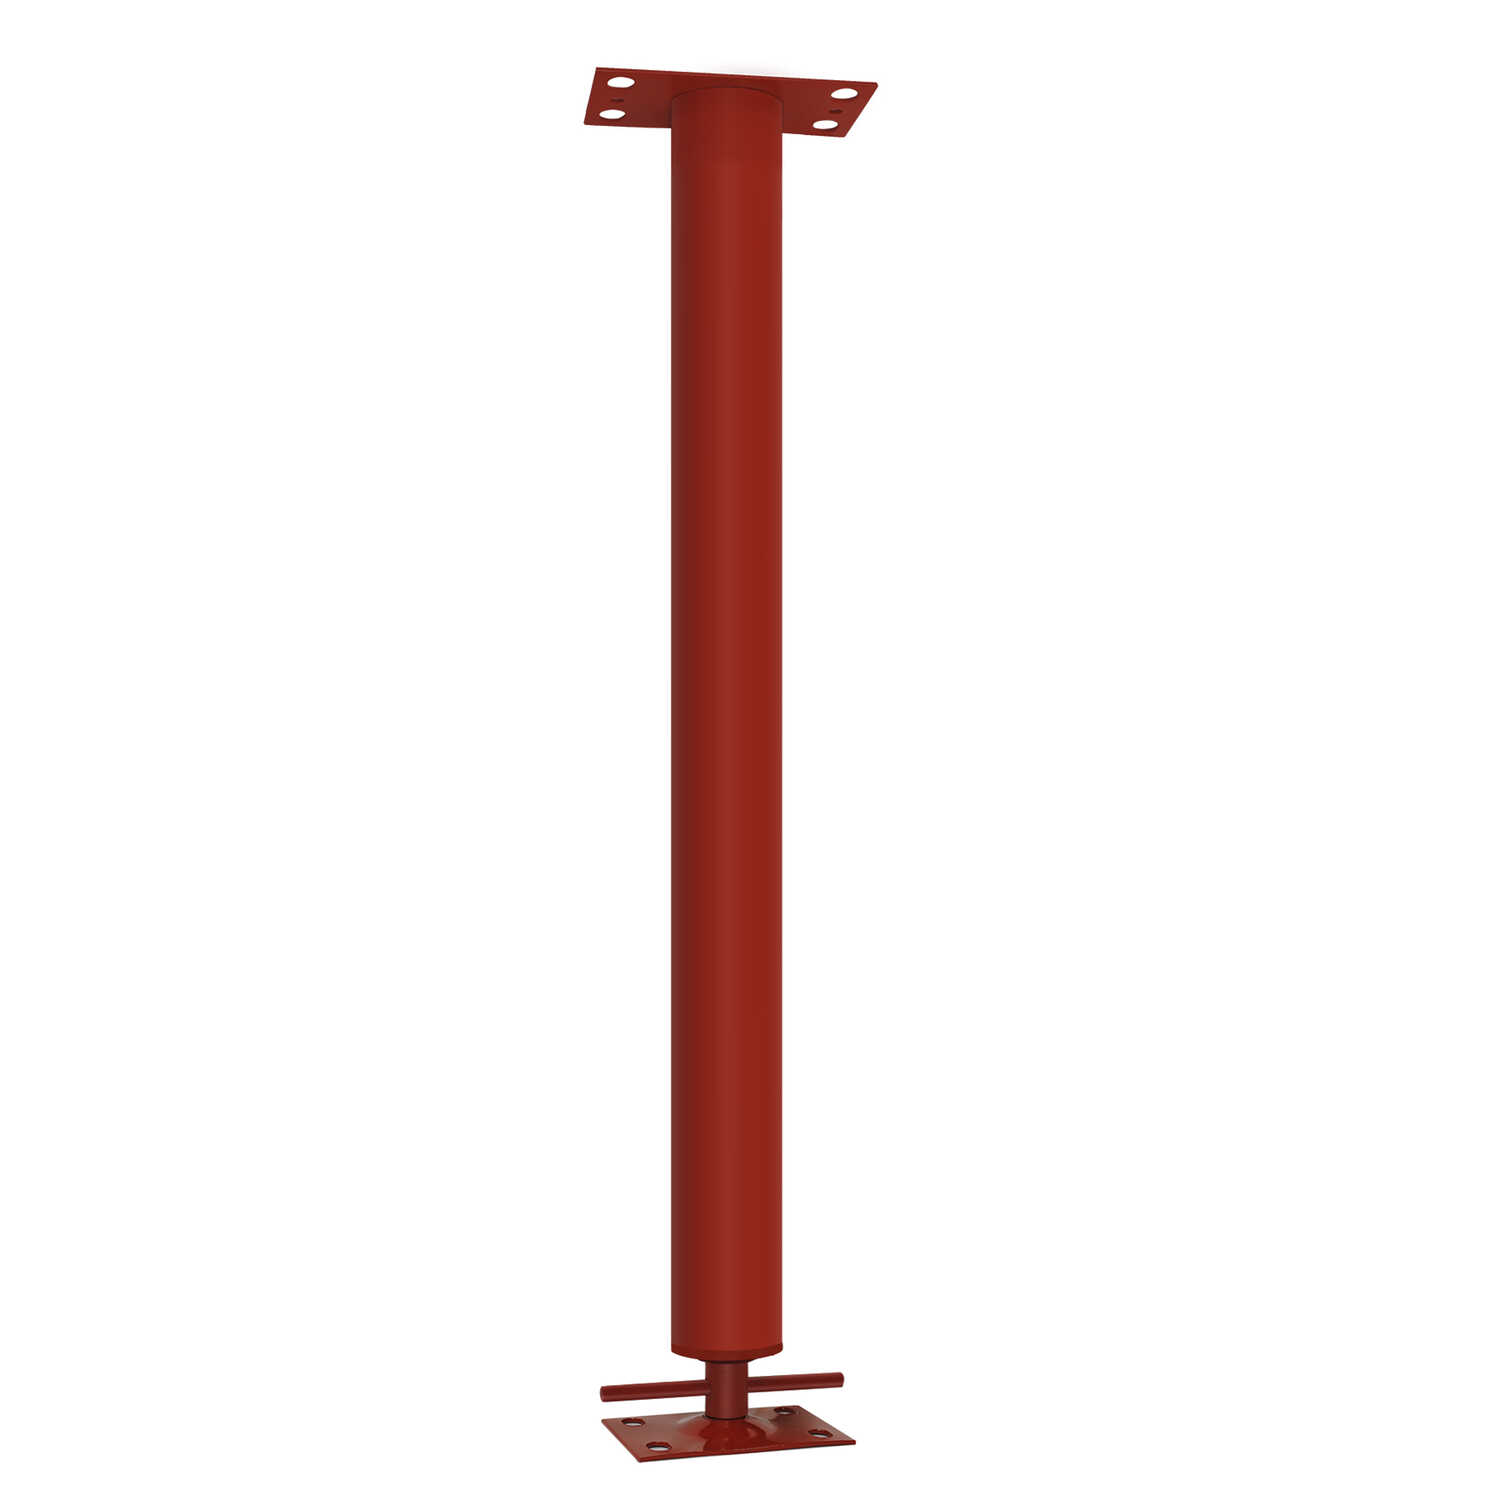 Tiger Brand Jack  3 in. Dia. x 2 ft. H Adjustable Building Support Column  24700 lb.